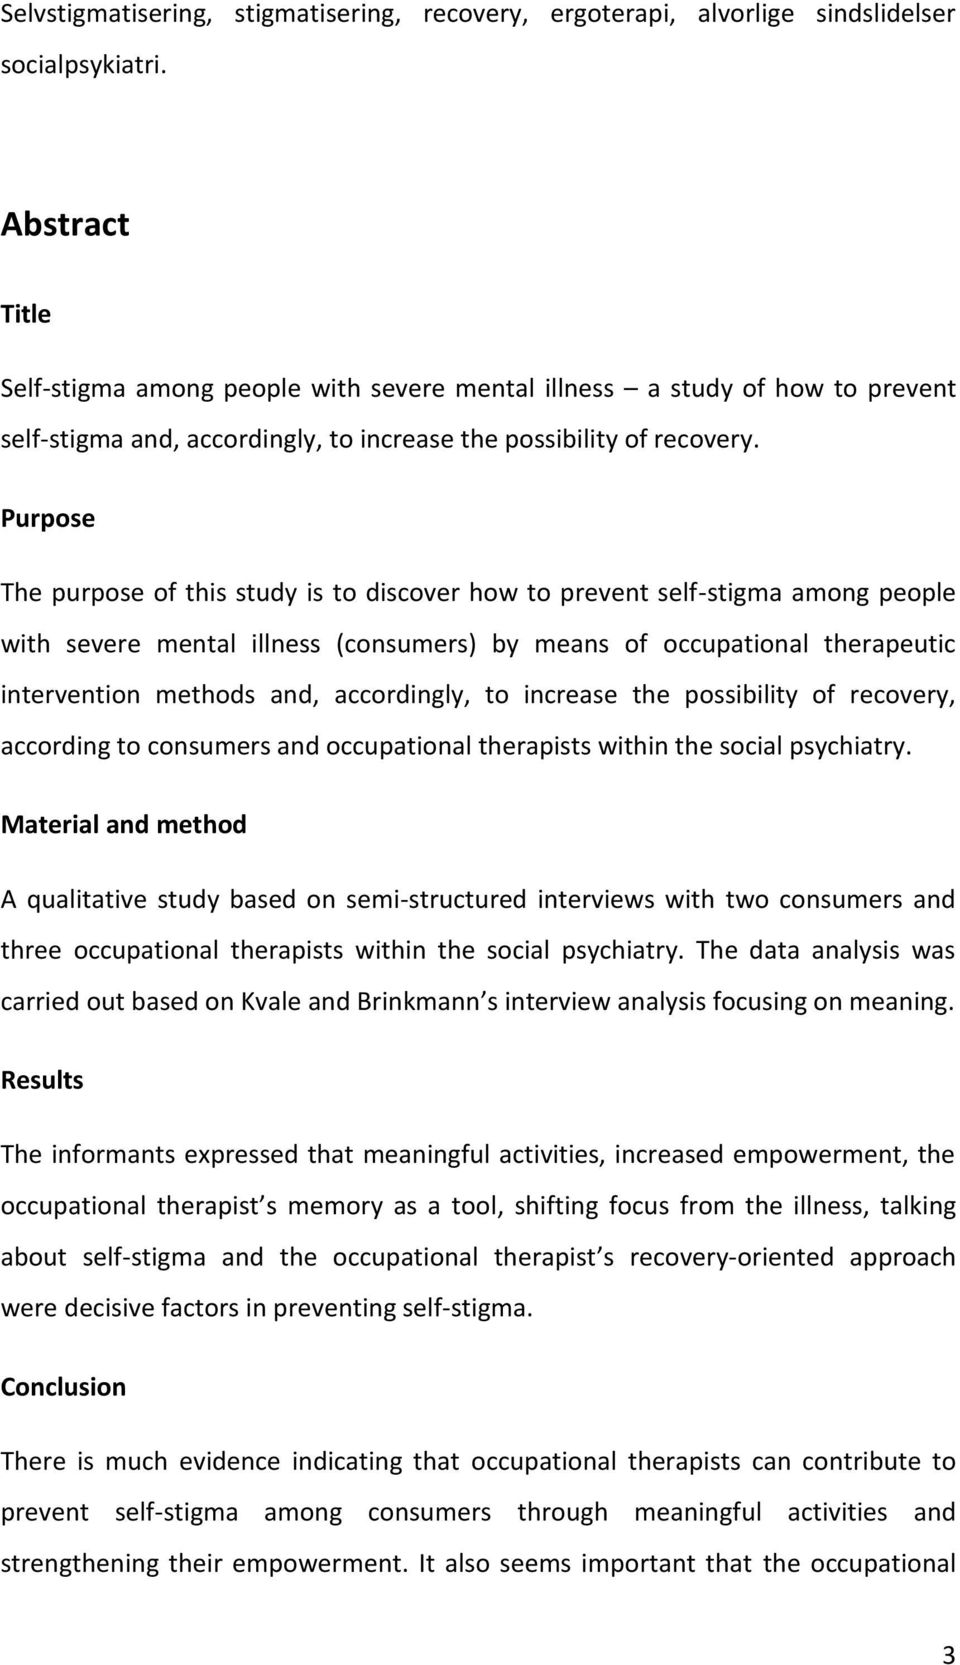 Purpose The purpose of this study is to discover how to prevent self-stigma among people with severe mental illness (consumers) by means of occupational therapeutic intervention methods and,